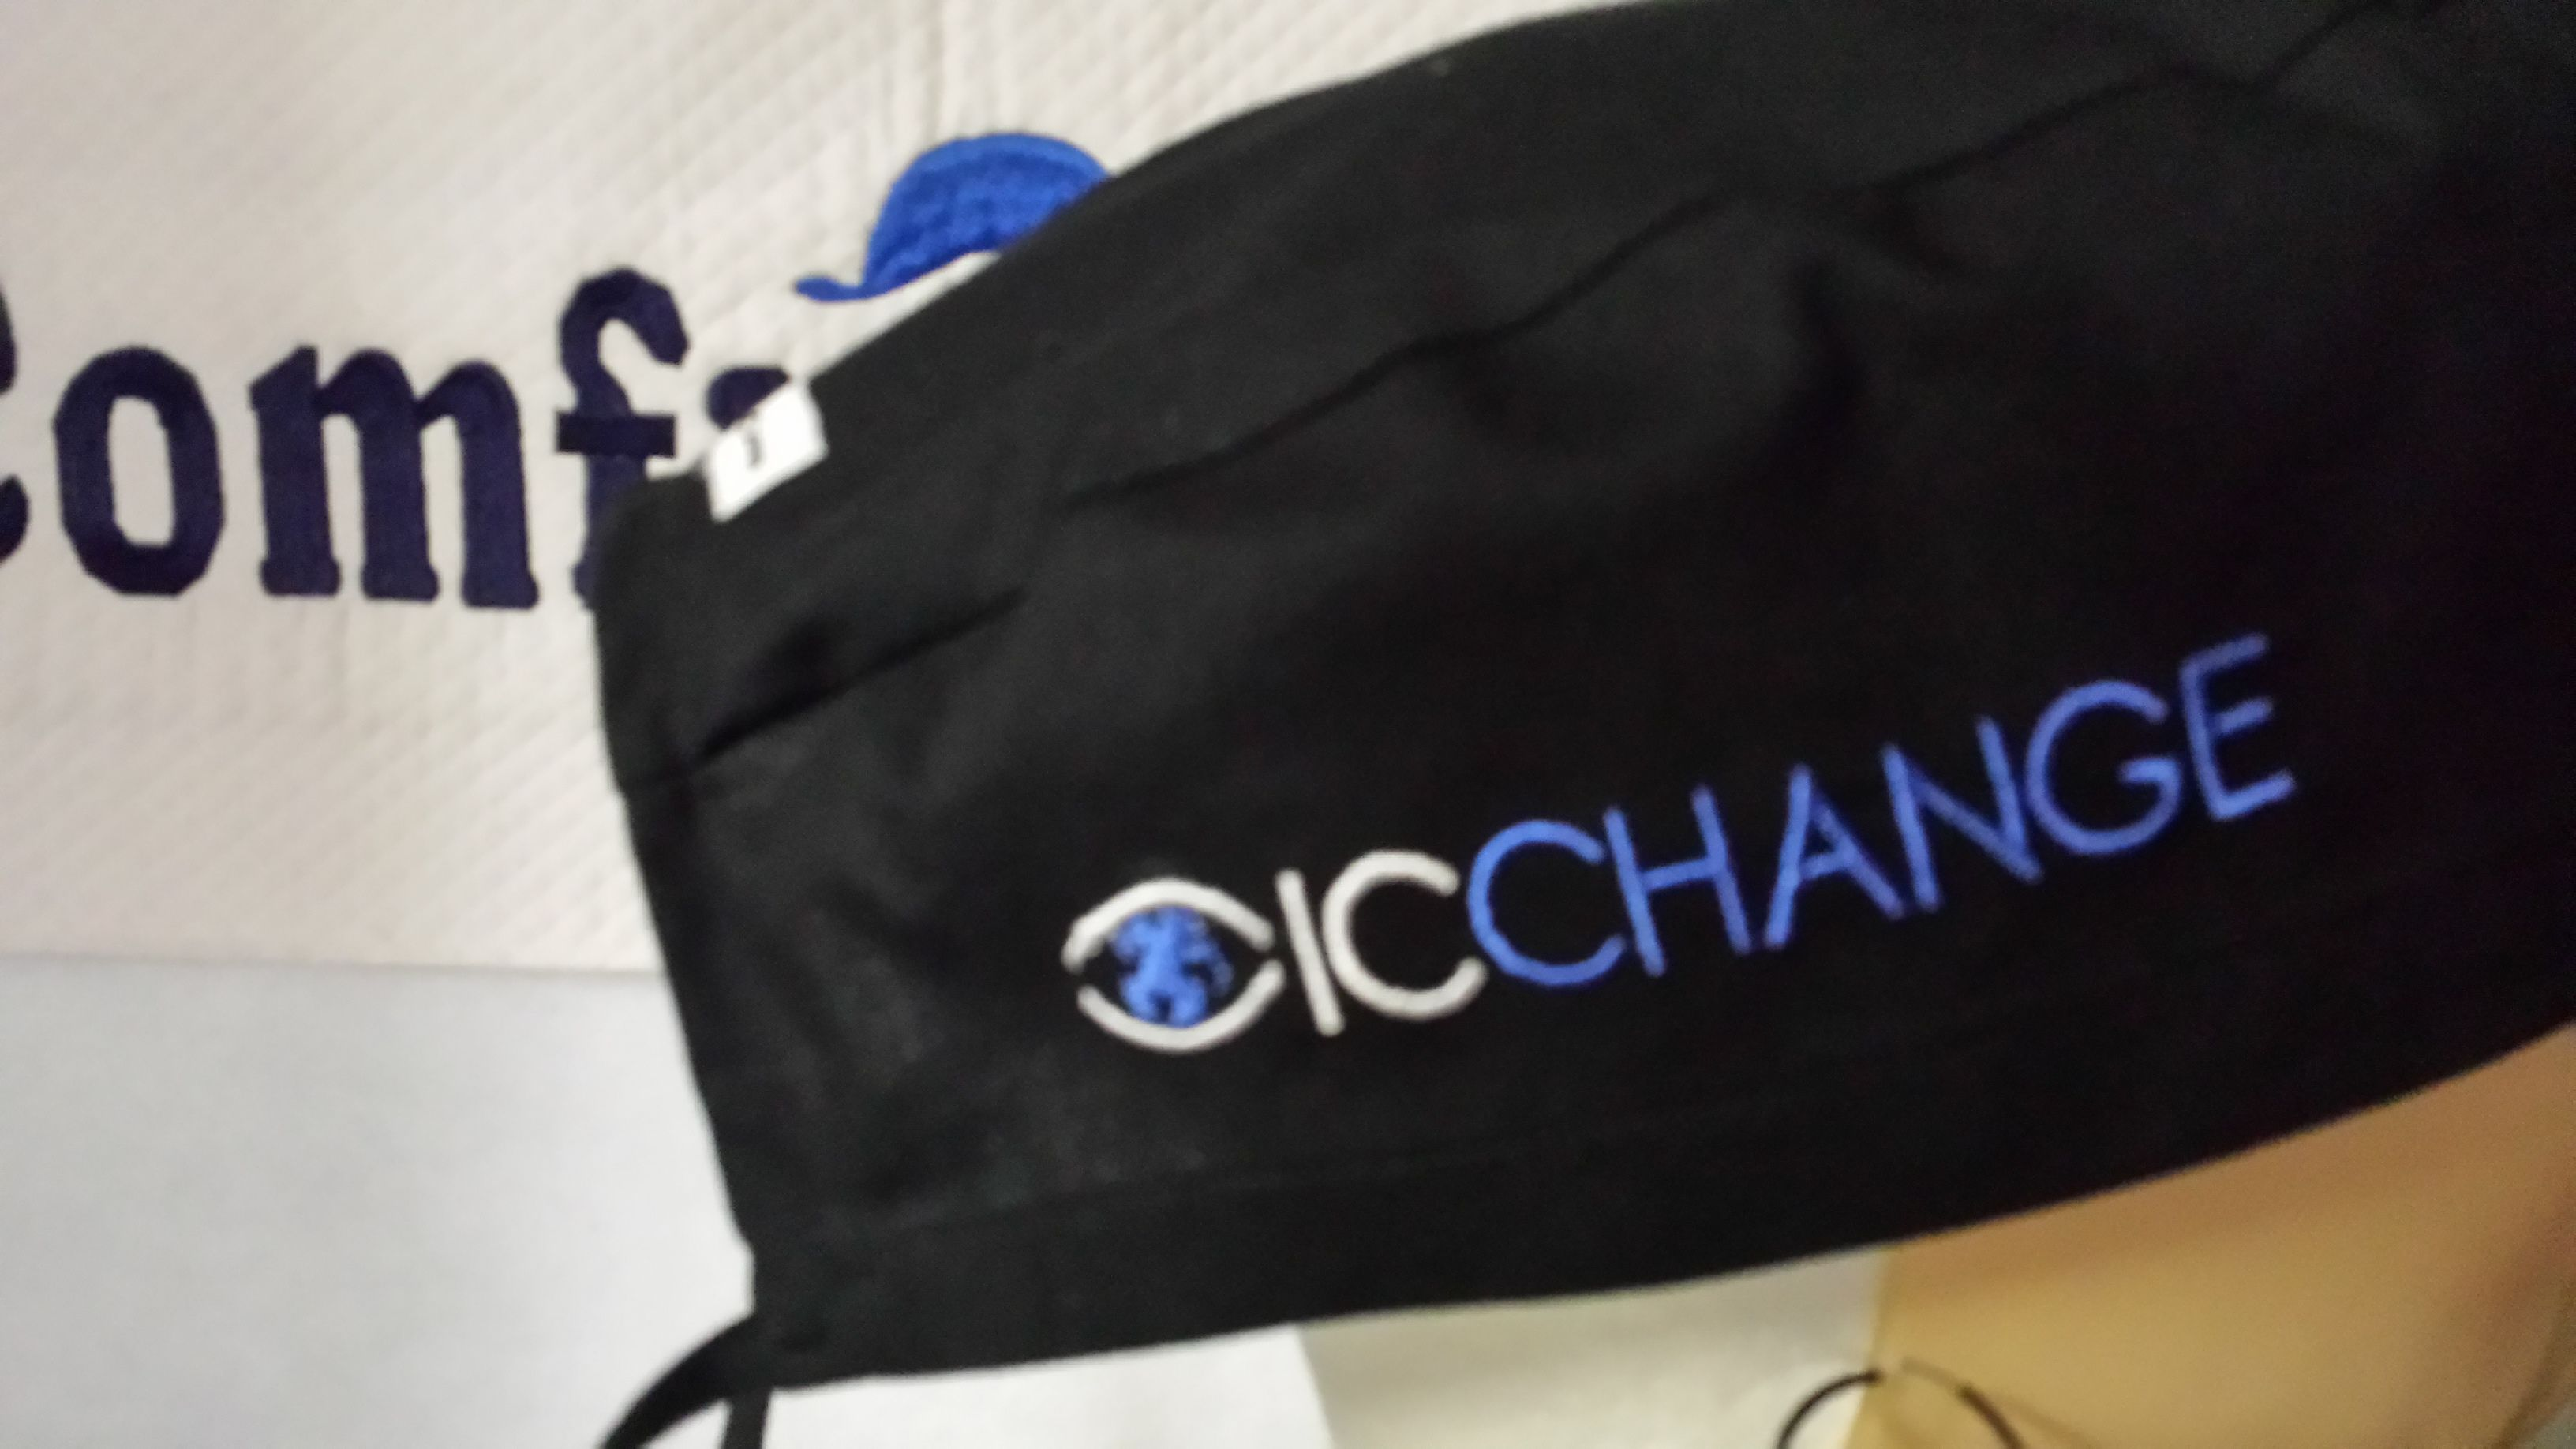 ICChange company logo embroidered on the side of a male scrub cap.